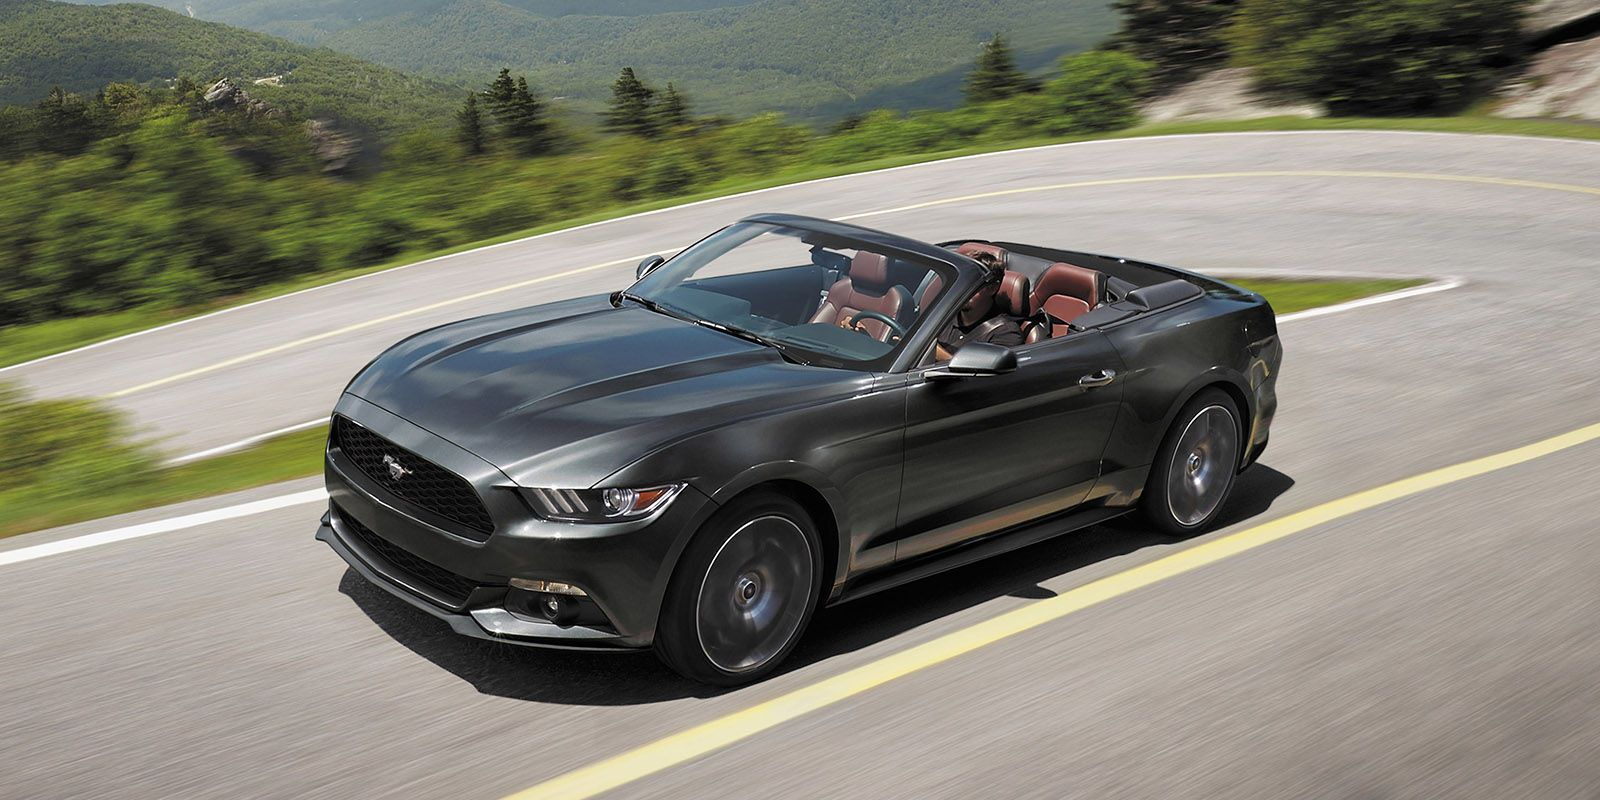 Mustang Will Reportedly Get Magnetic Ride 10 Speed Auto For 2018